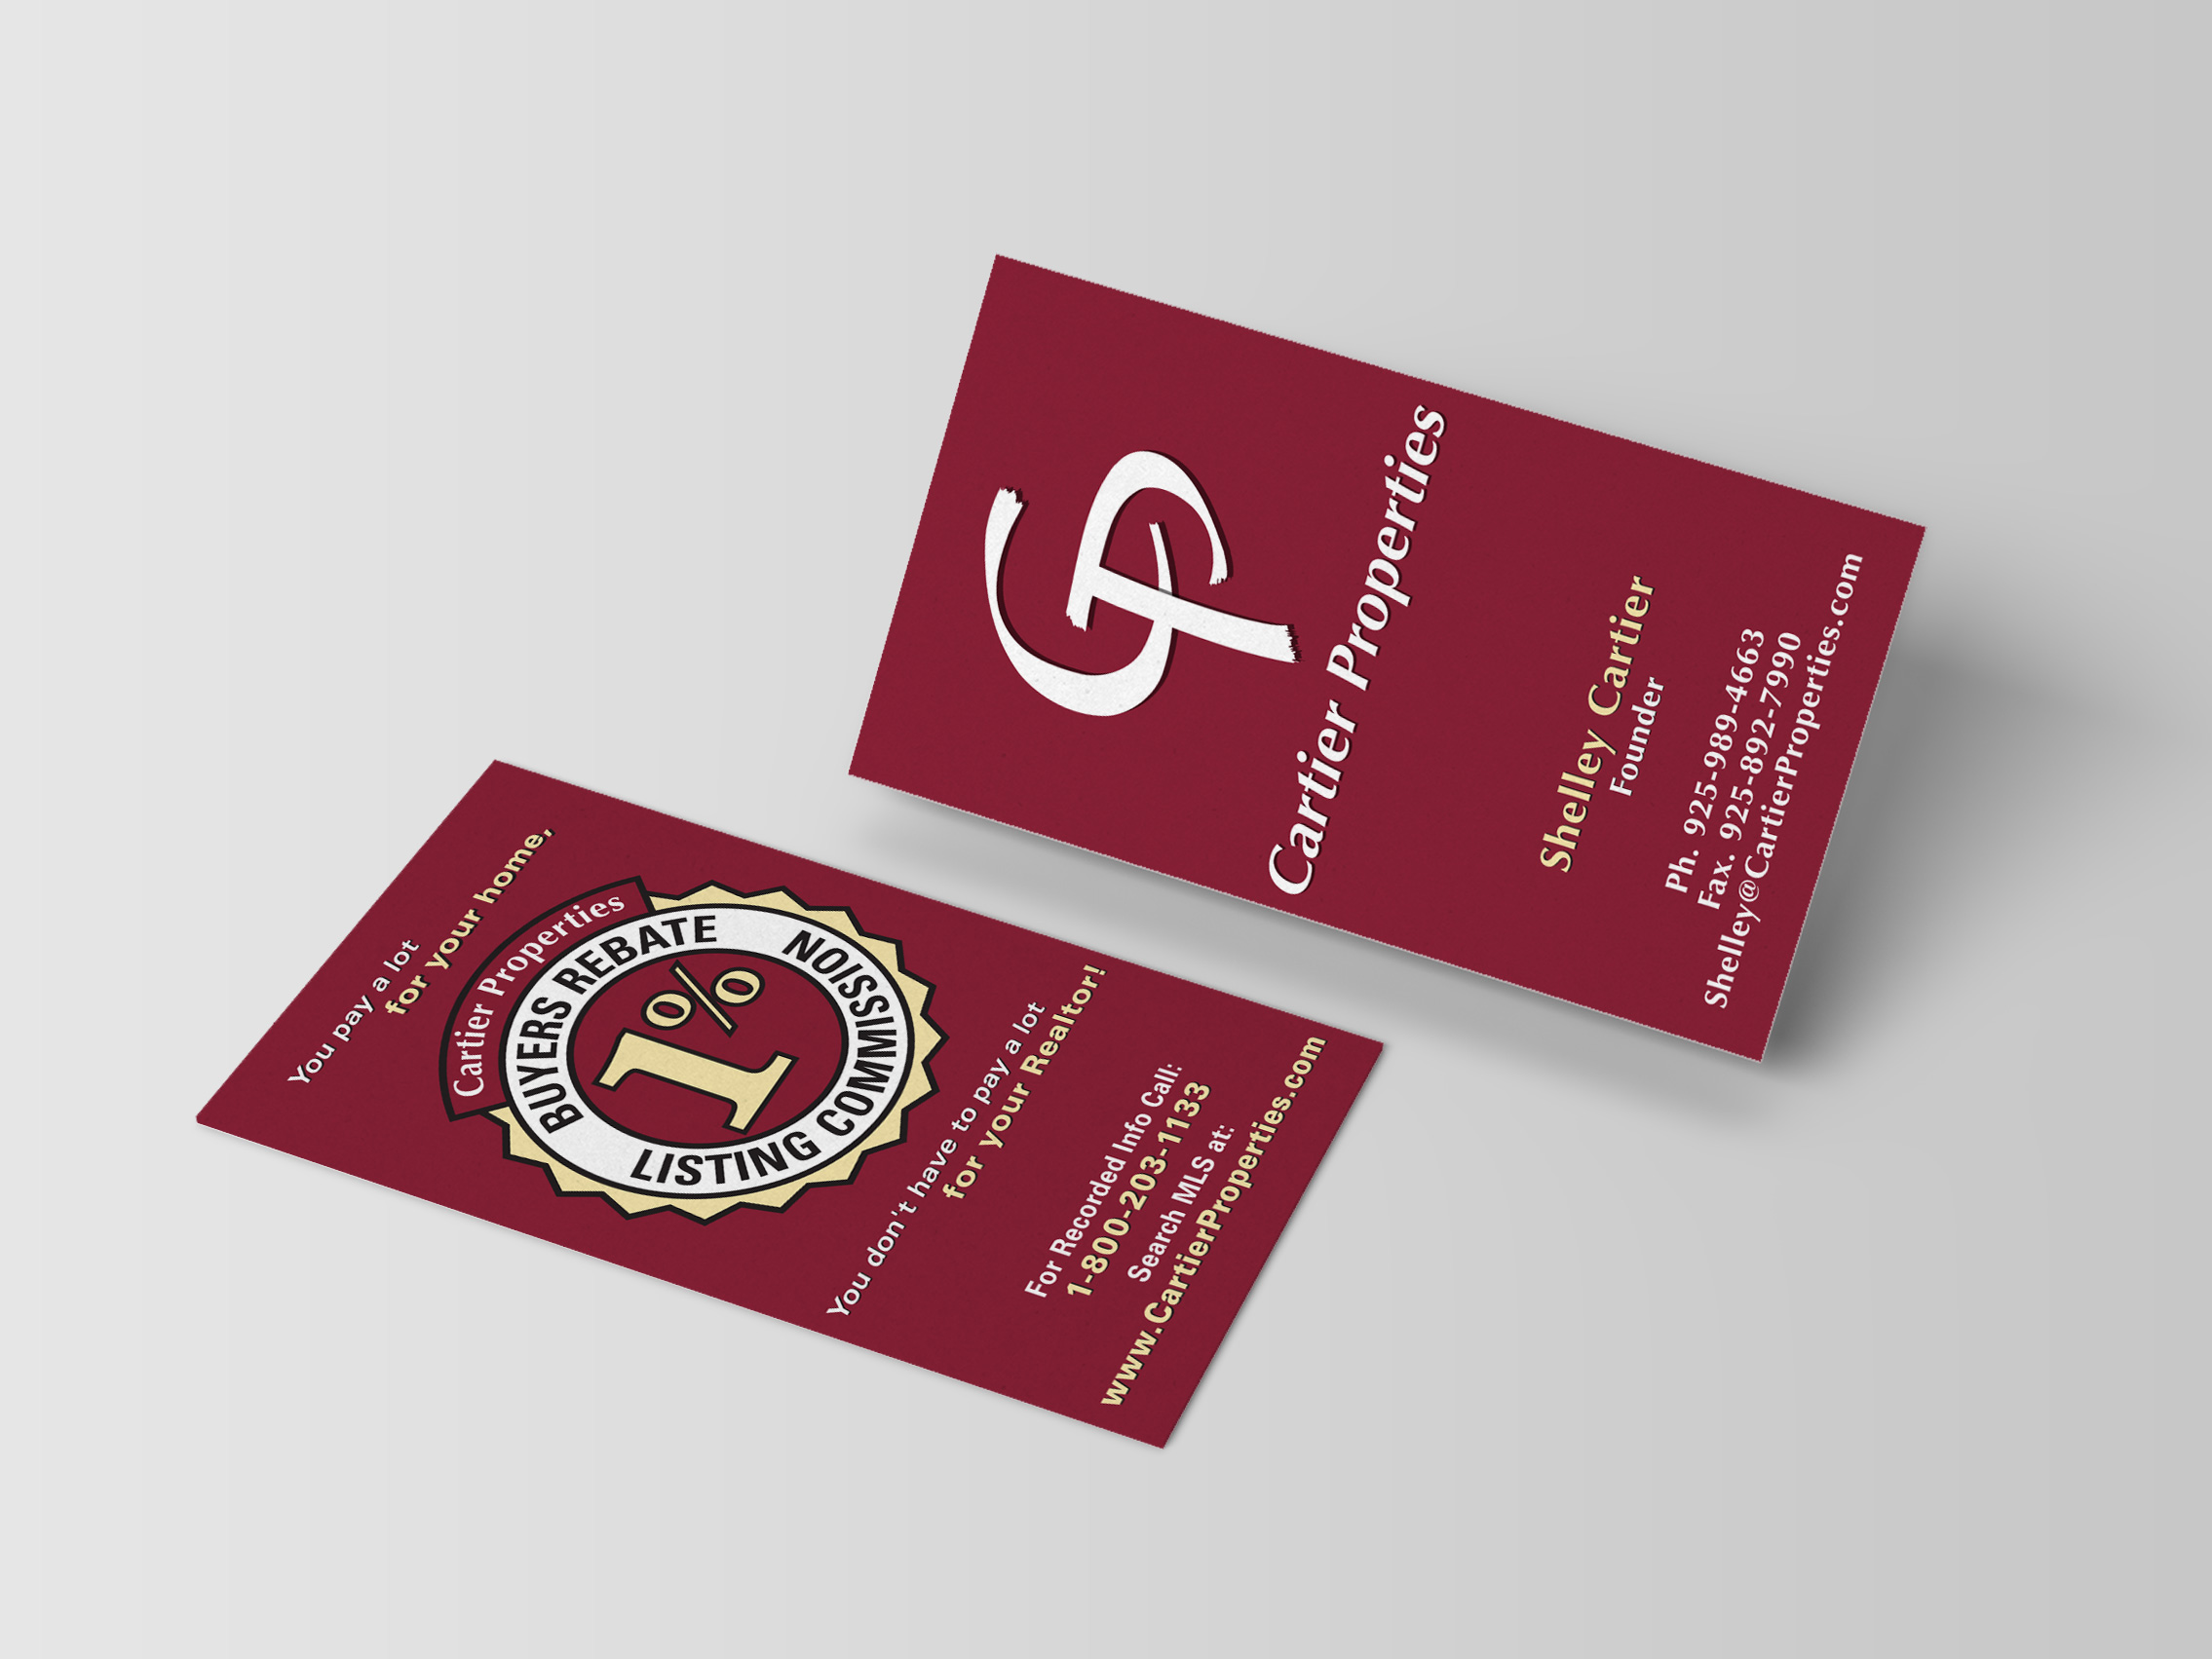 Business-Card-Mockups1.jpg